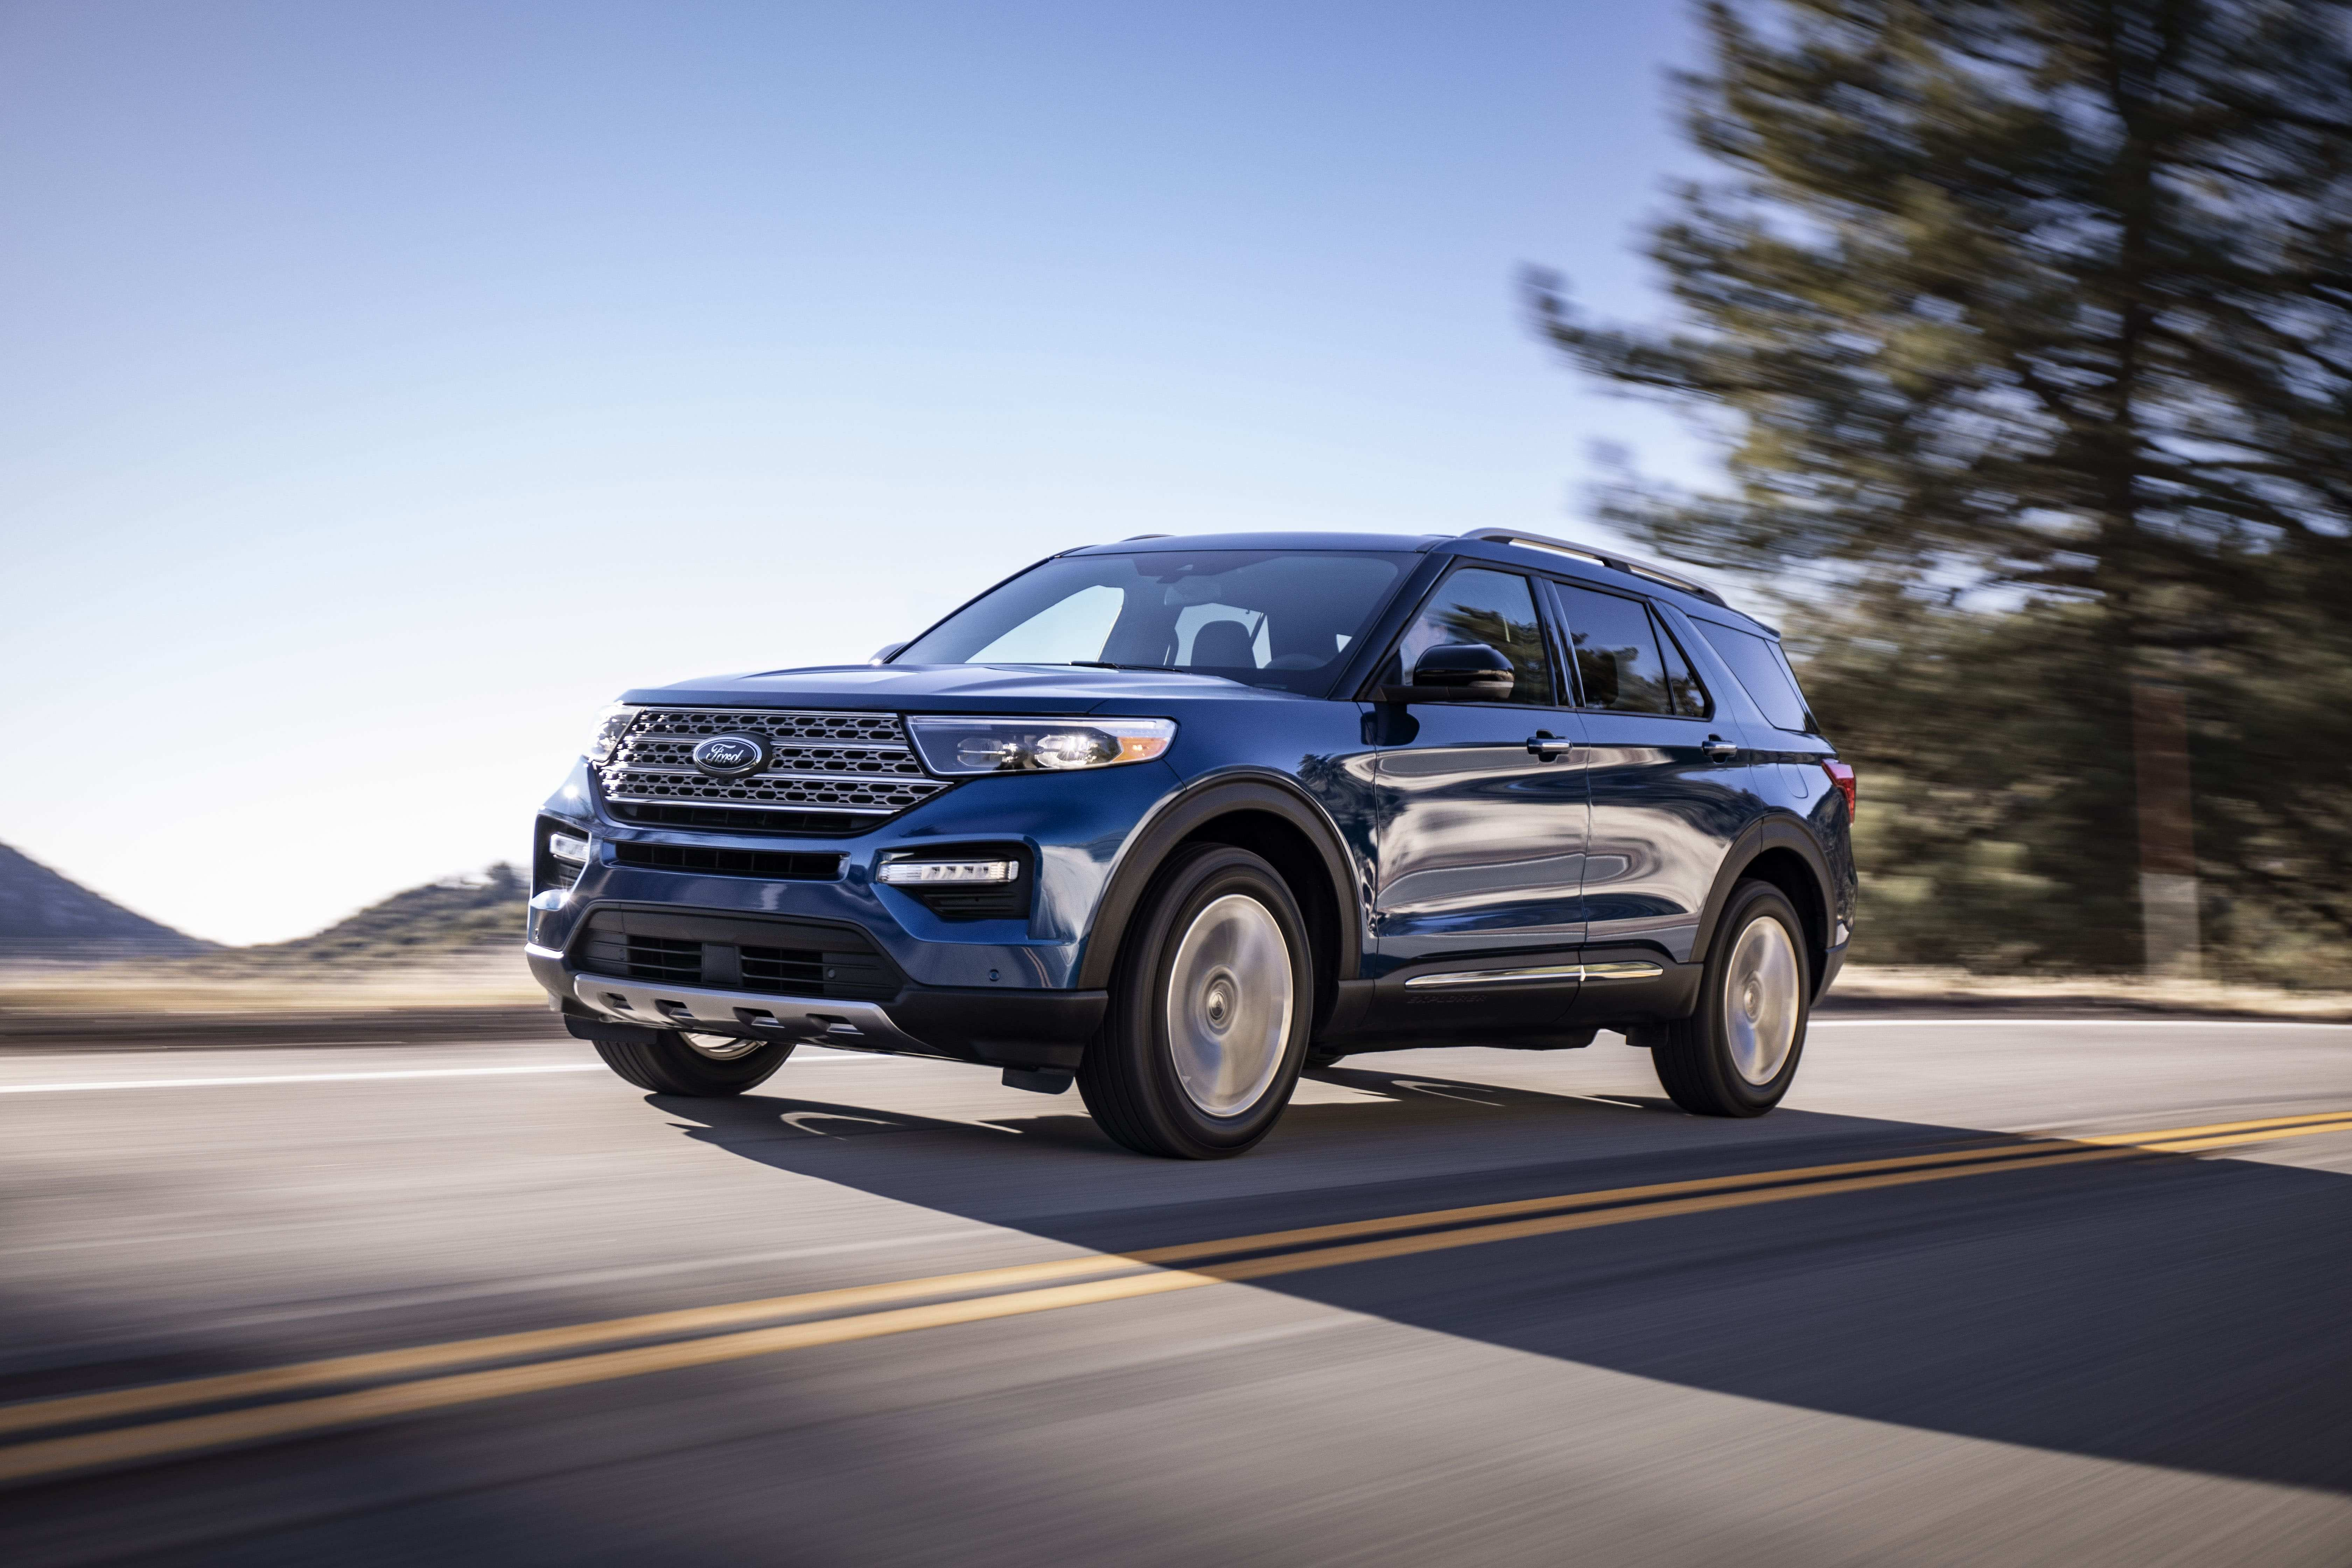 41 Great Price Of 2020 Ford Explorer New Review with Price Of 2020 Ford Explorer